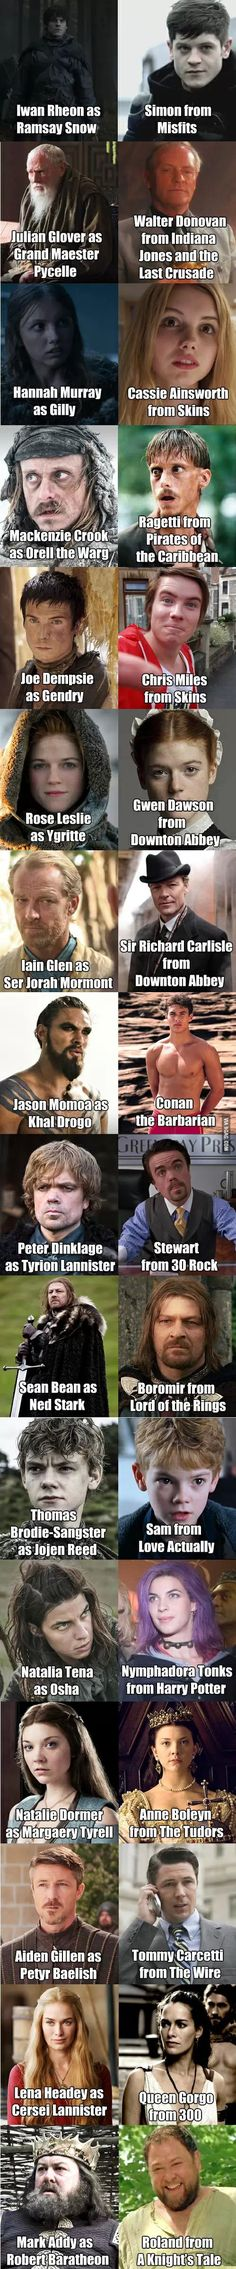 #GameofThrones characters on other shows. I think Peter Drinklage's photo is from Elf.